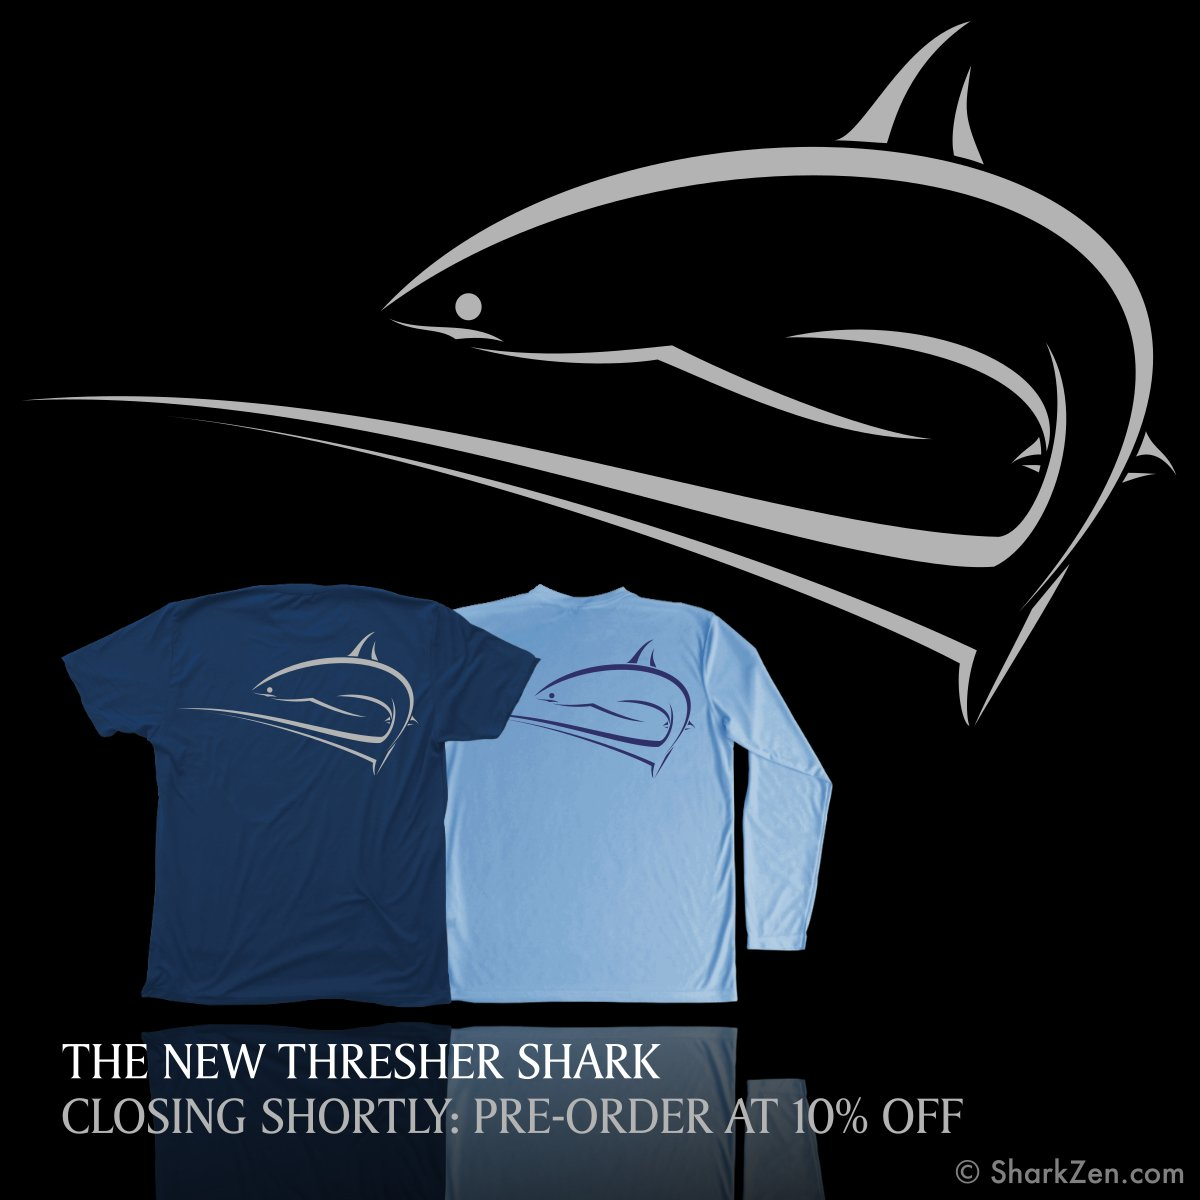 2948e412 Introducing the New Thresher Shark. Sun Protection Swim Shirt and Premium T- Shirt Available for Pre-Order at 10% Off For a Limited Time.